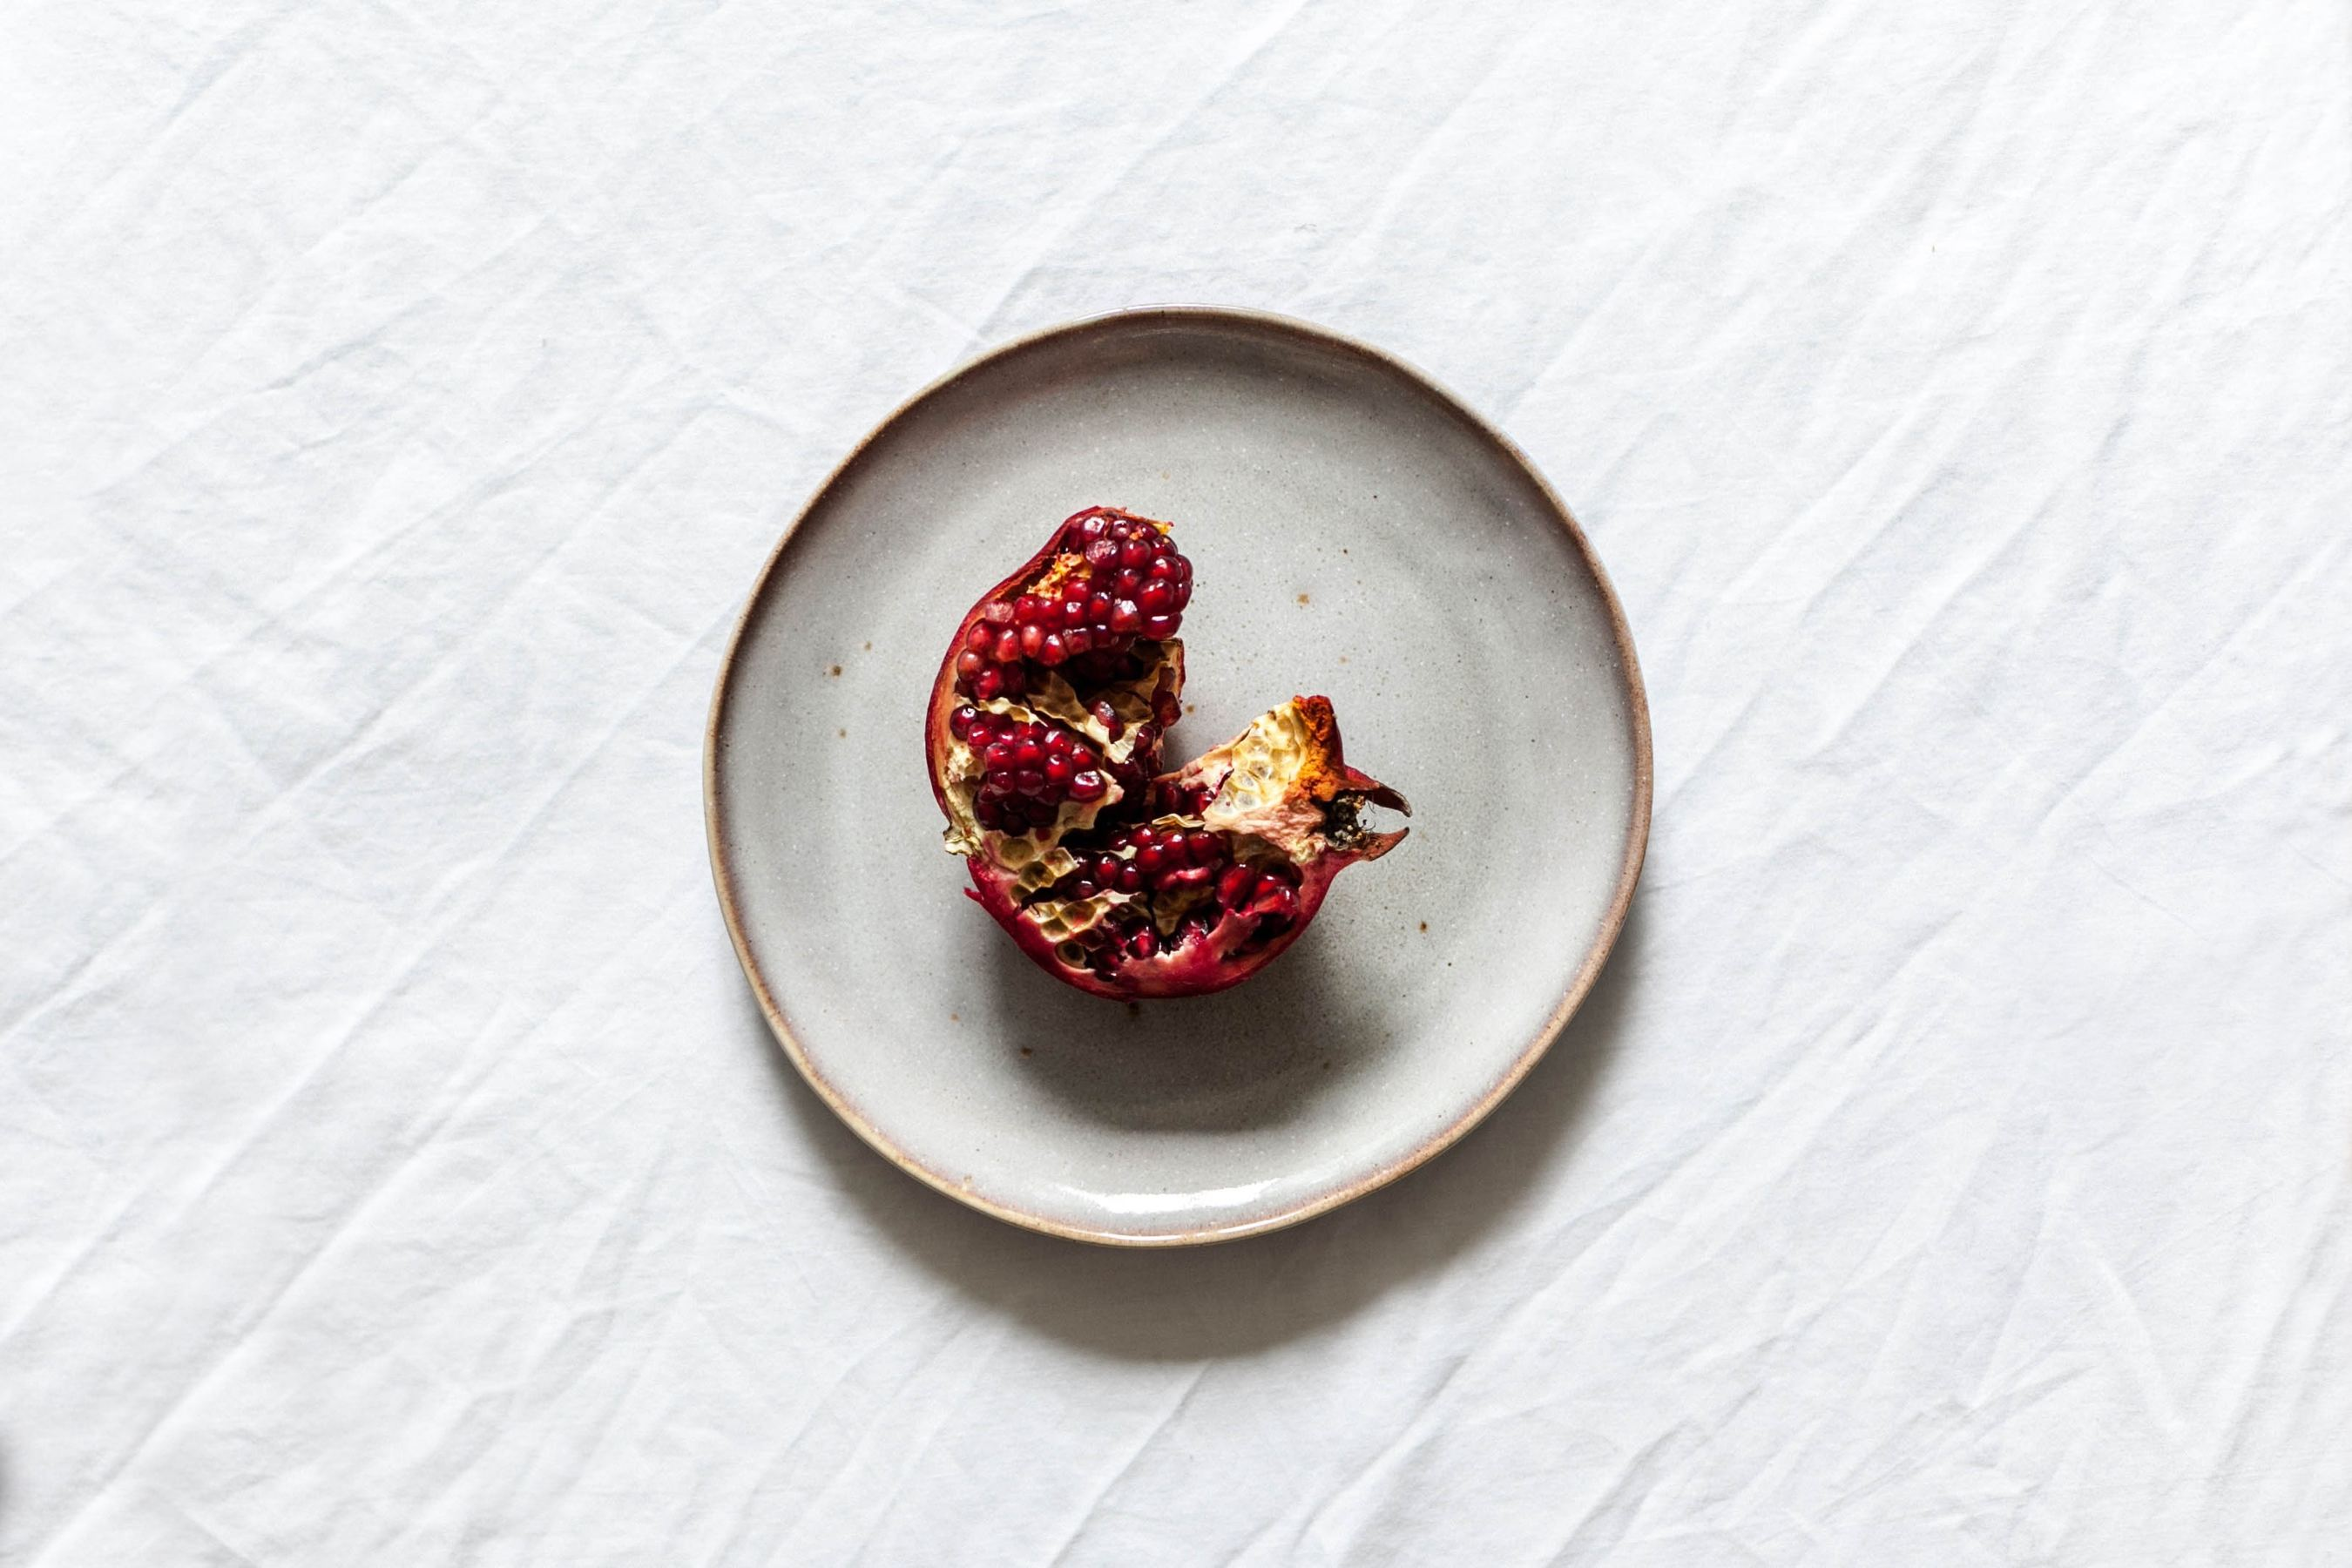 pomegranate on a ceramic white plate